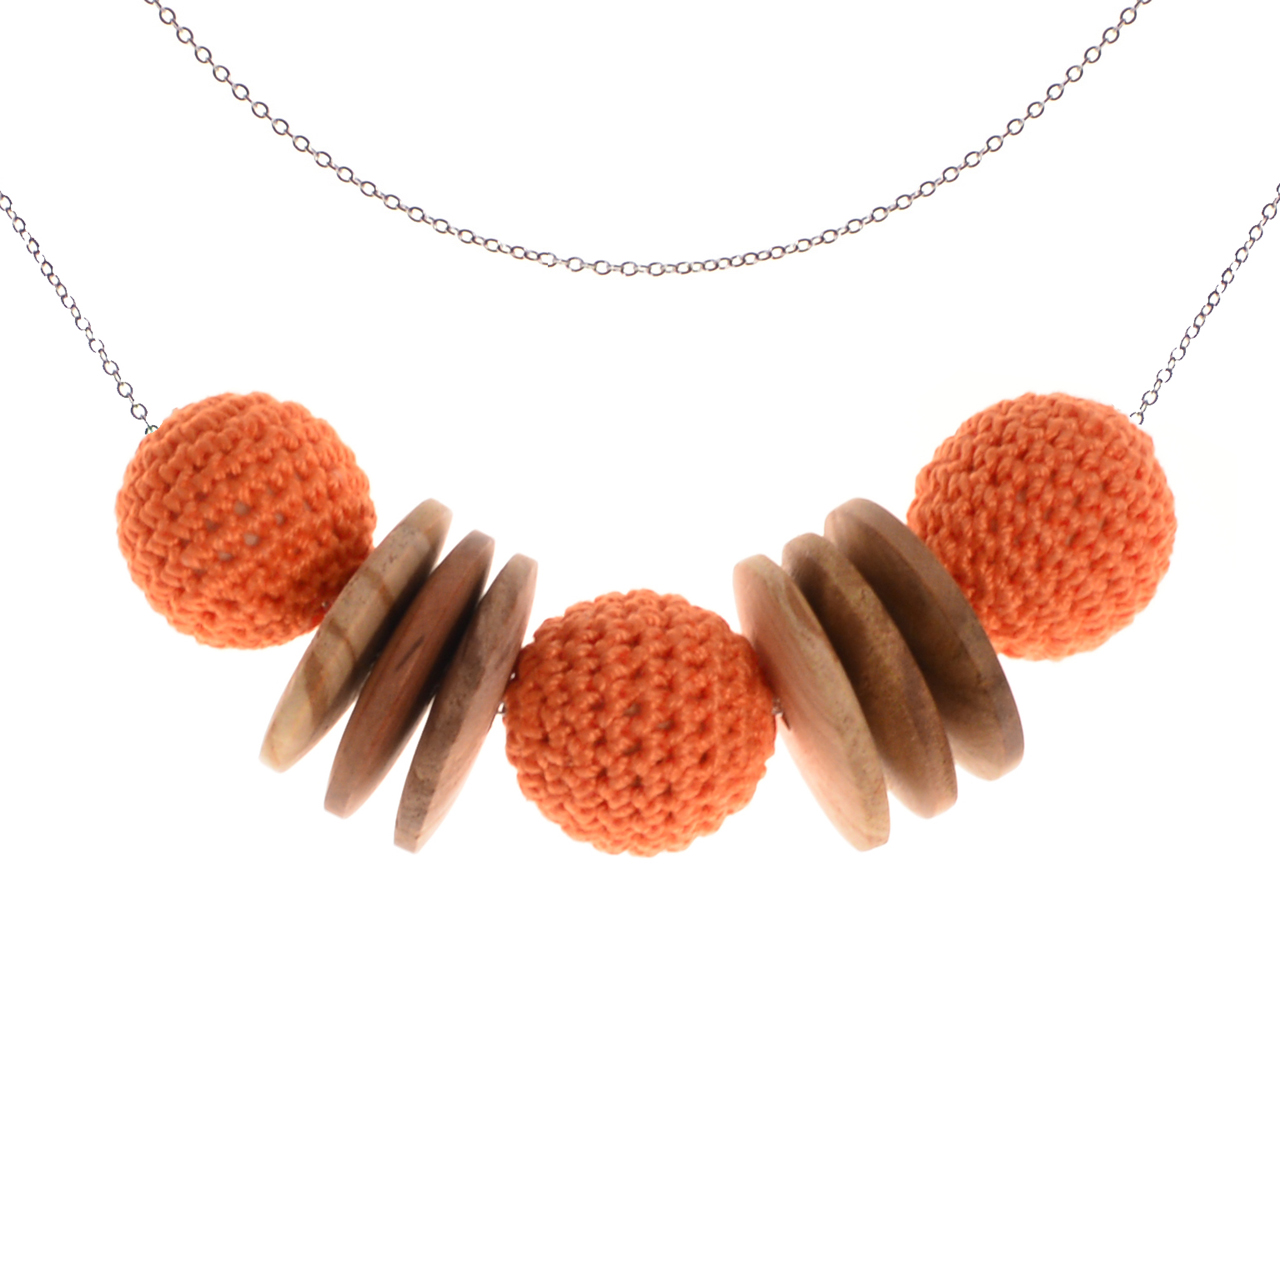 Mon Bijou - Necklace Elegance Nature - Orange | The Design Gift Shop